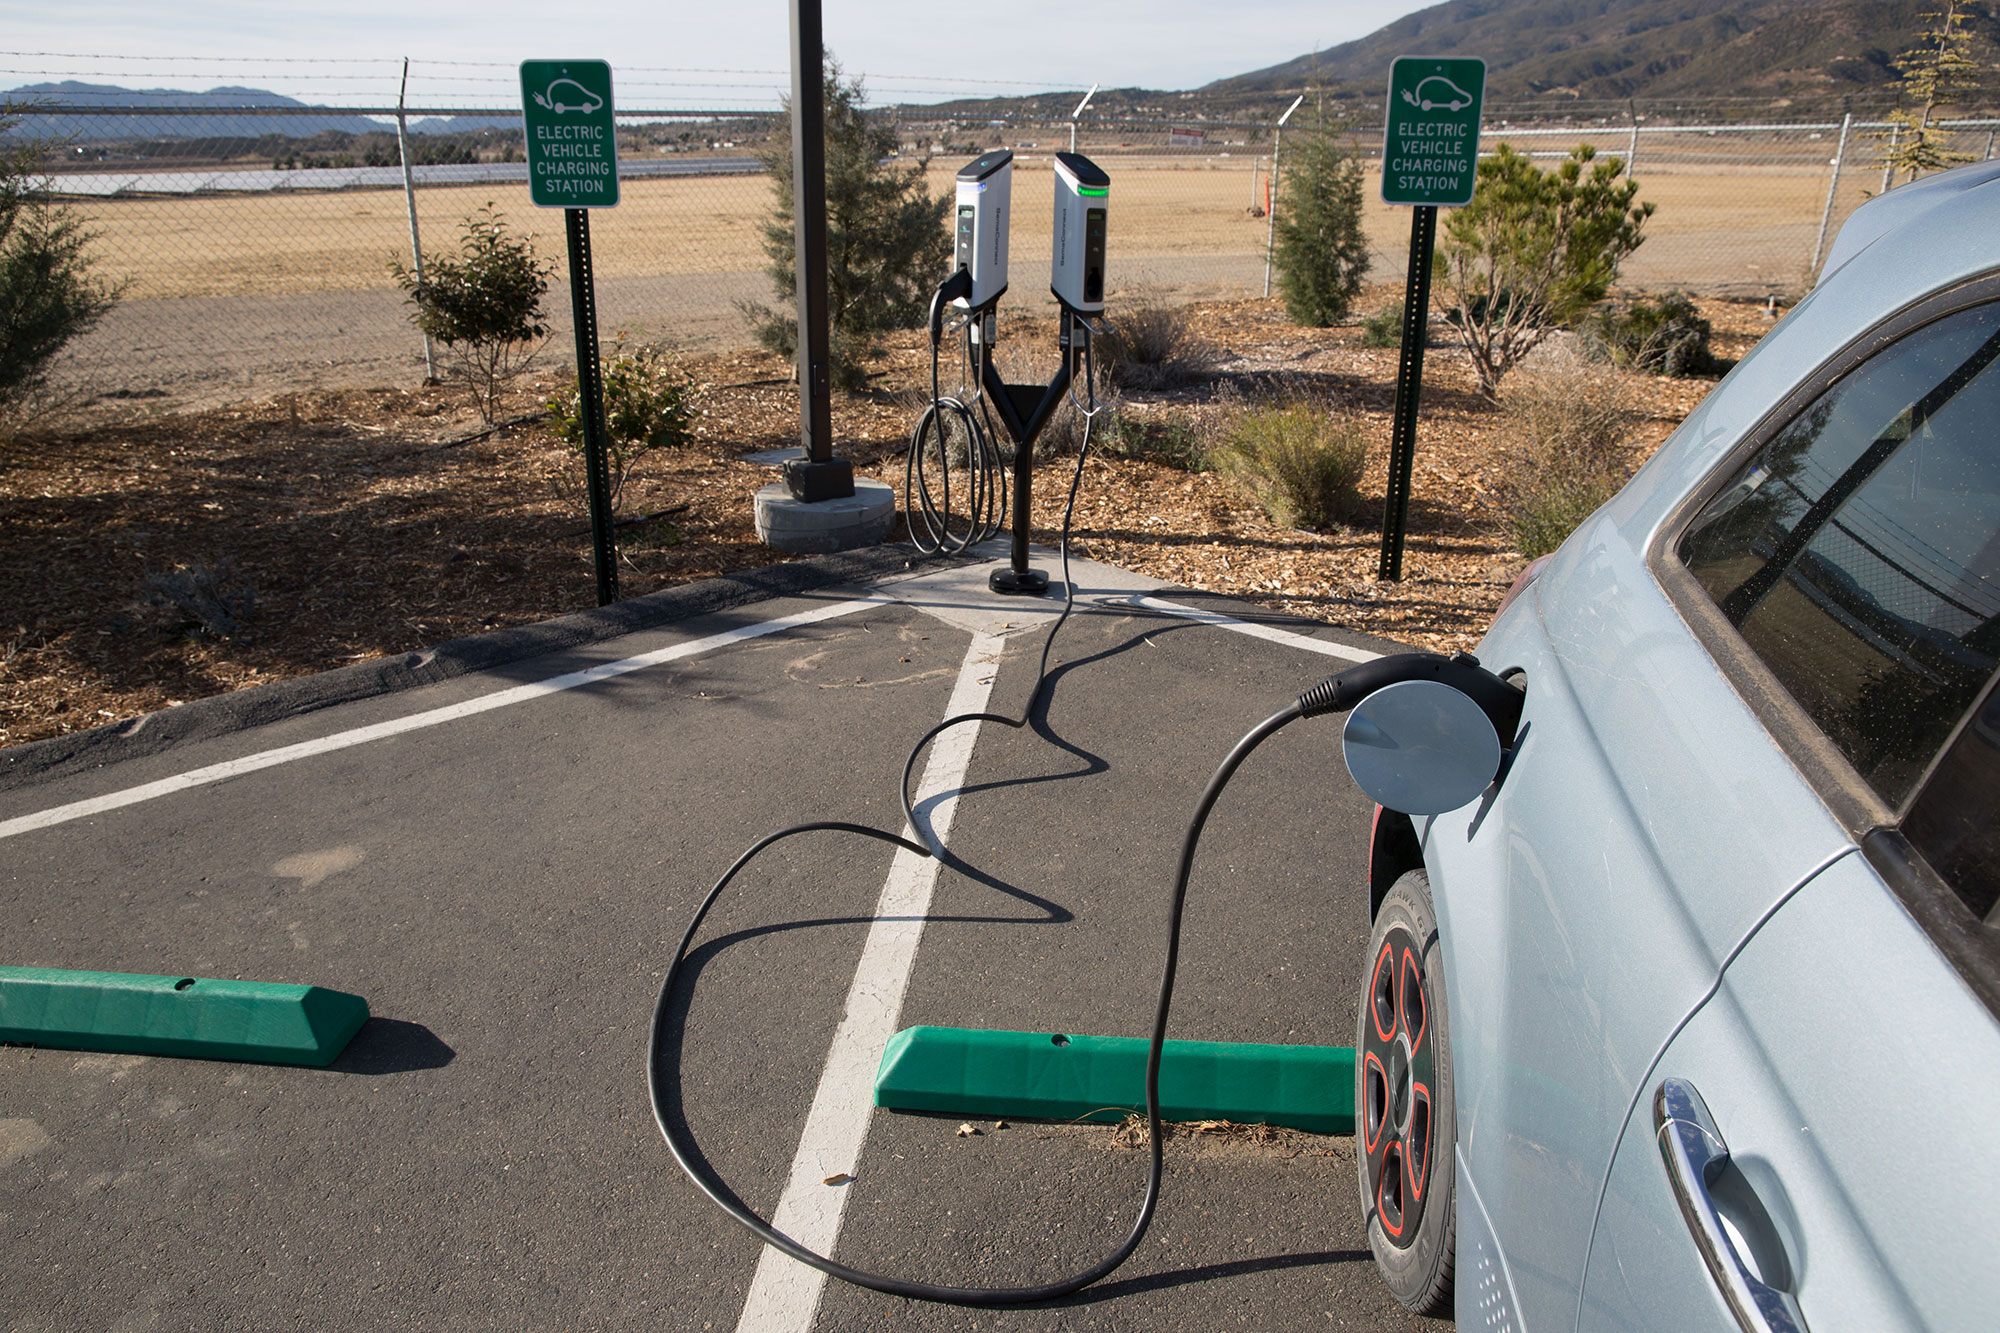 State Treasurer's Electric Vehicle Charging Sta-on Financing Program, Anza Electric Coopera-ve